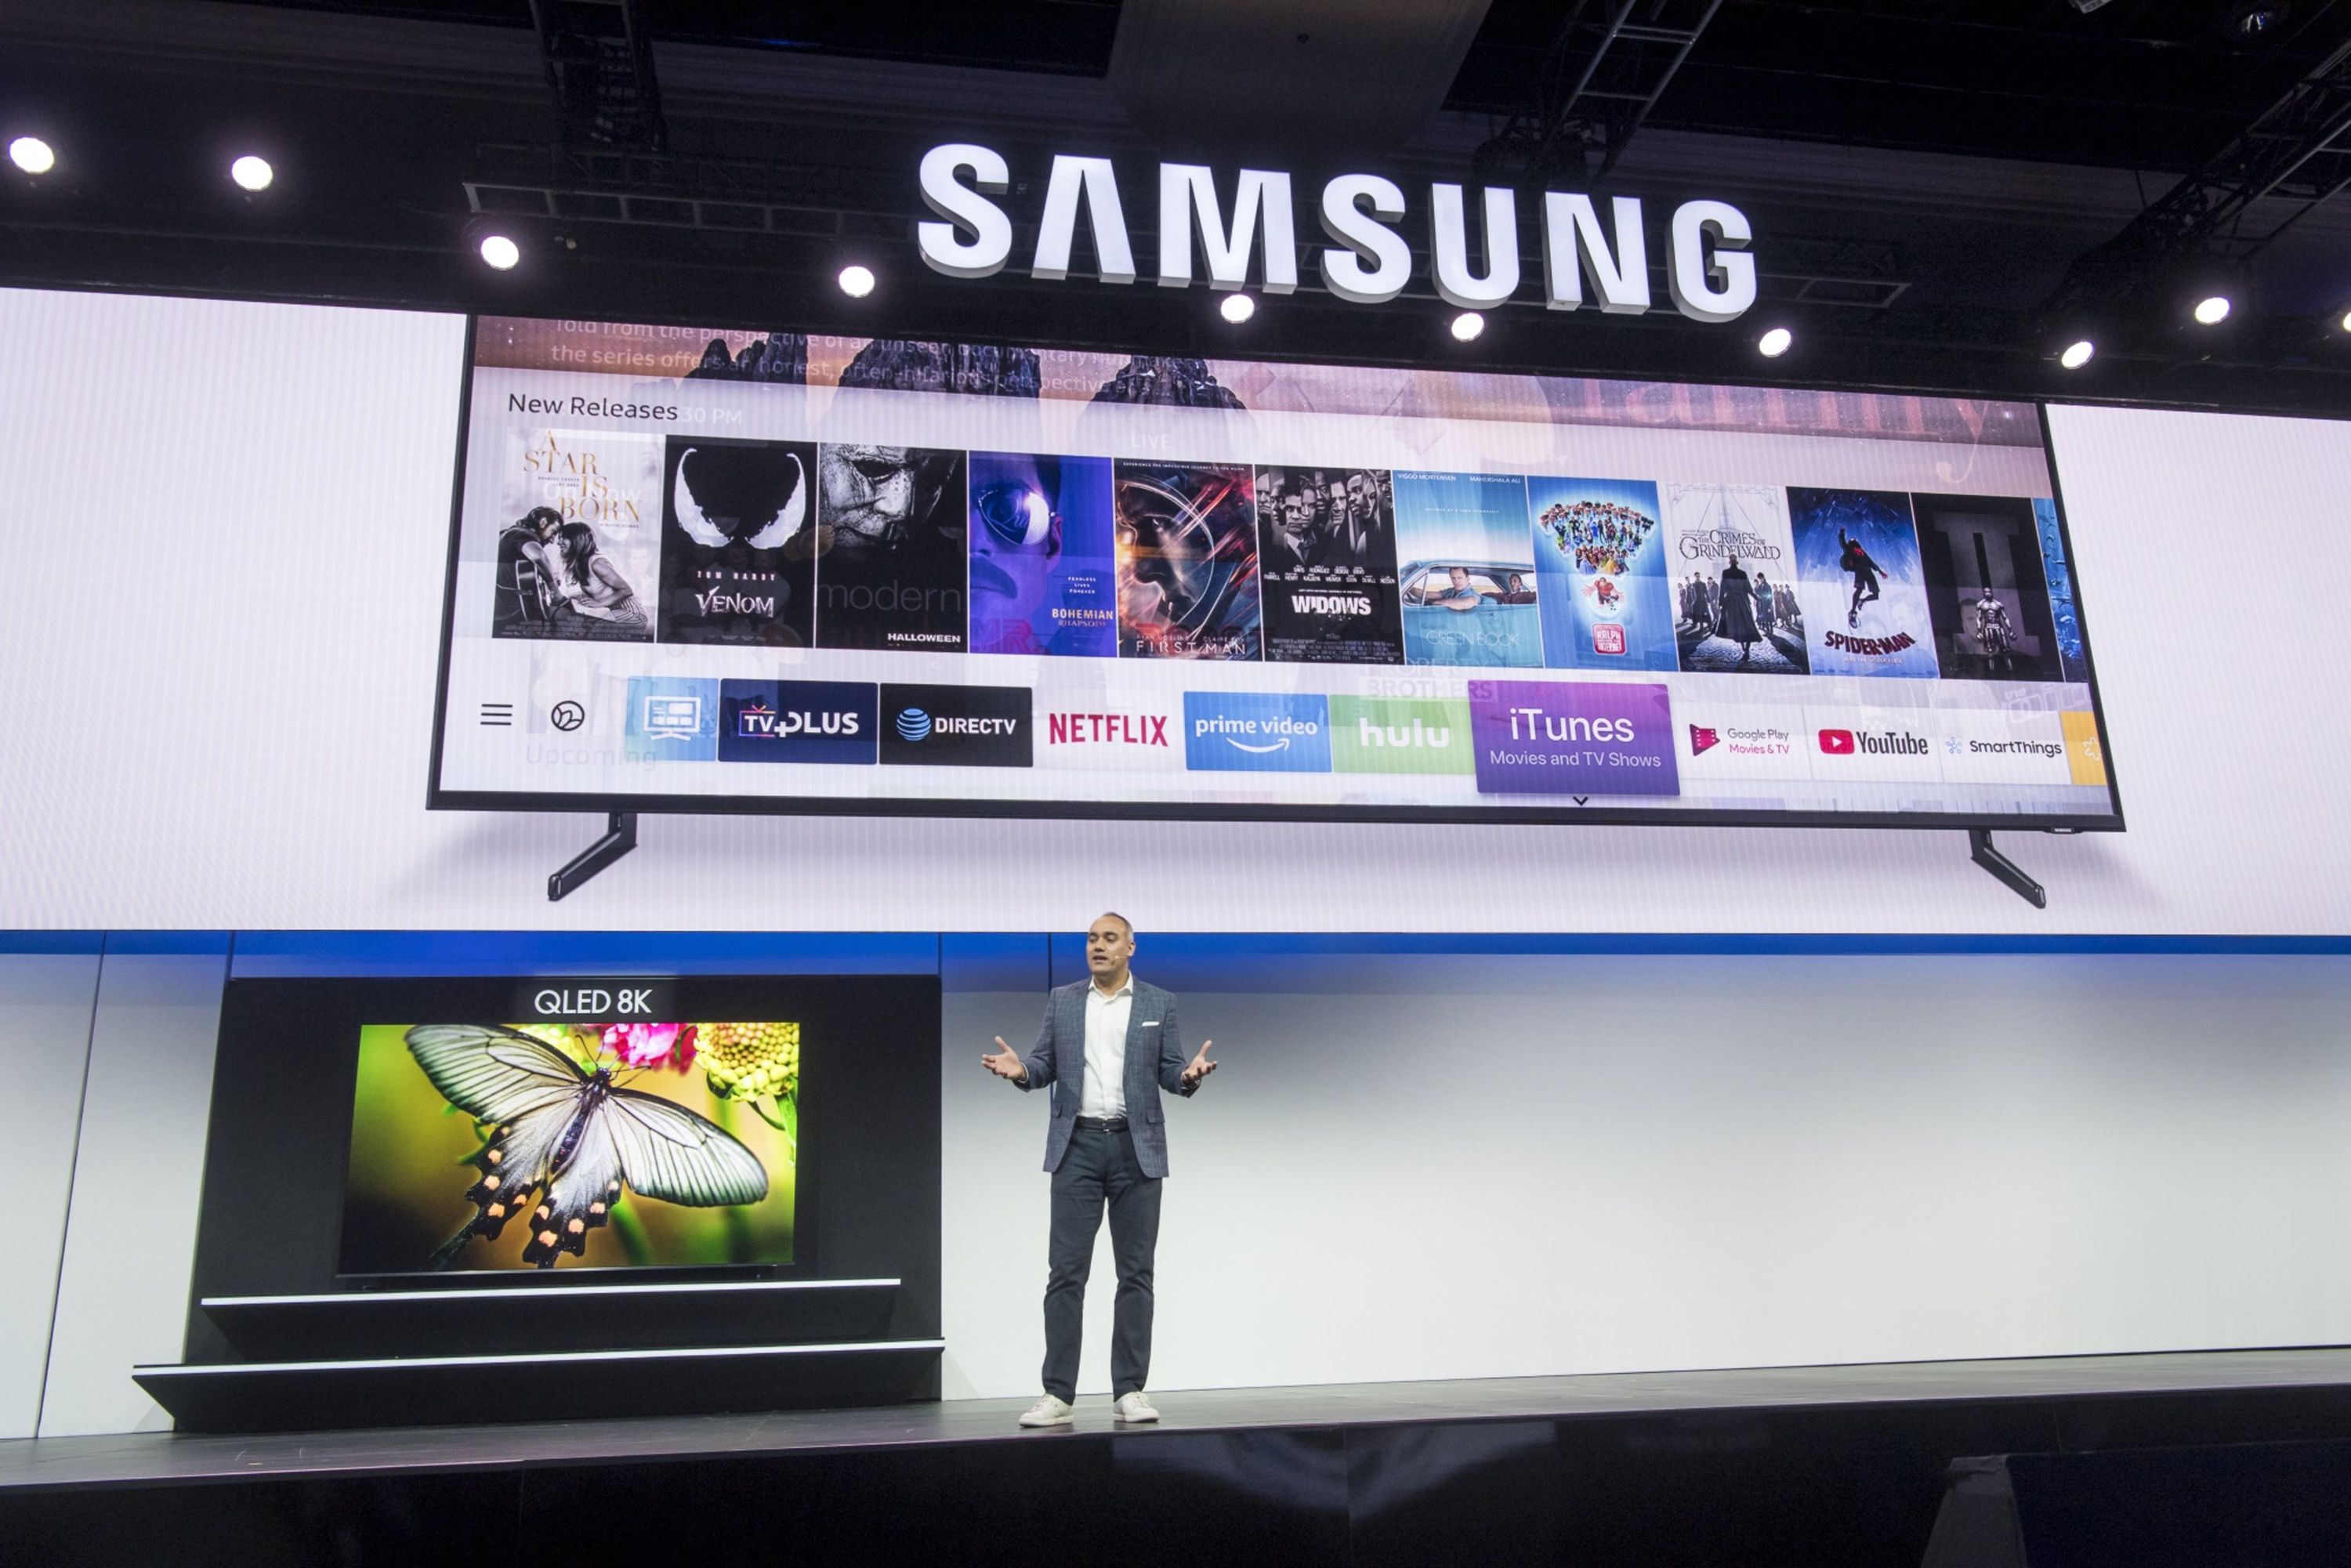 Samsung launches service to measure combined impact of linear and streaming campaigns